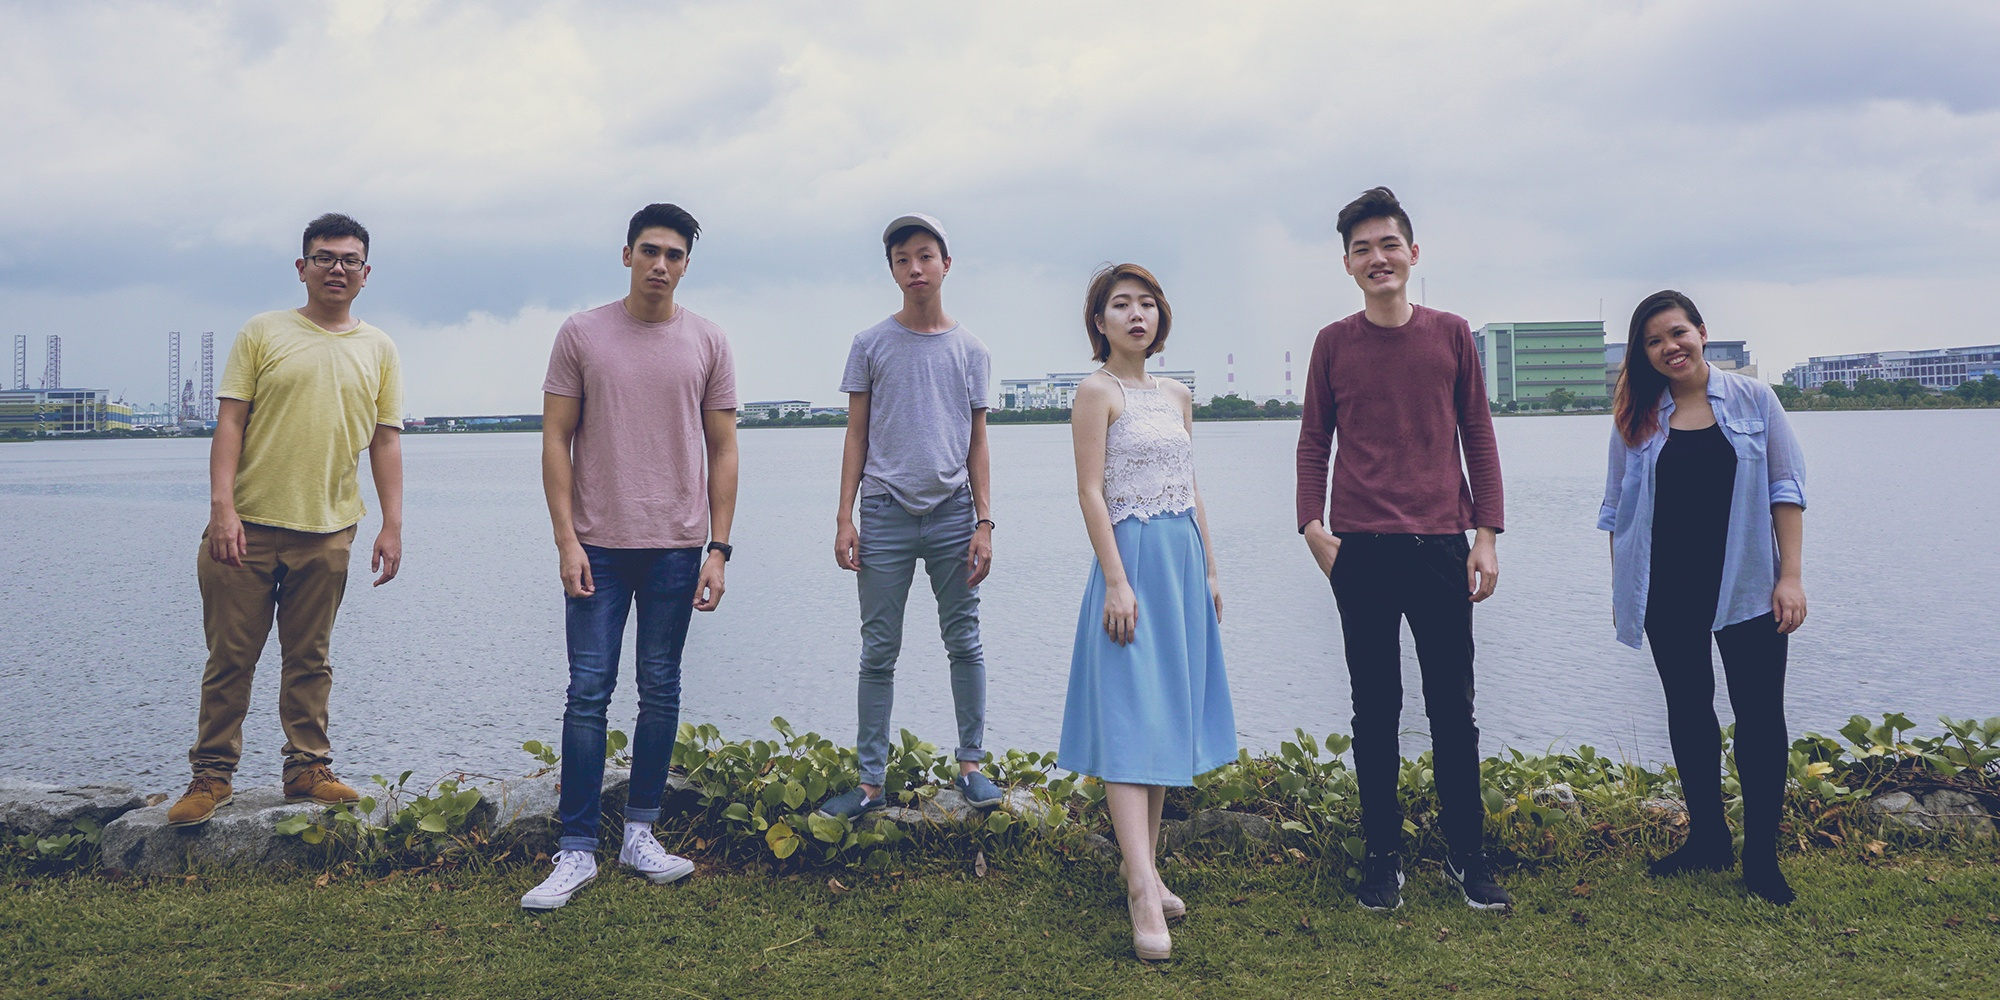 Amberhill's dreamy Songs from Summer was an EP conceived in urgency